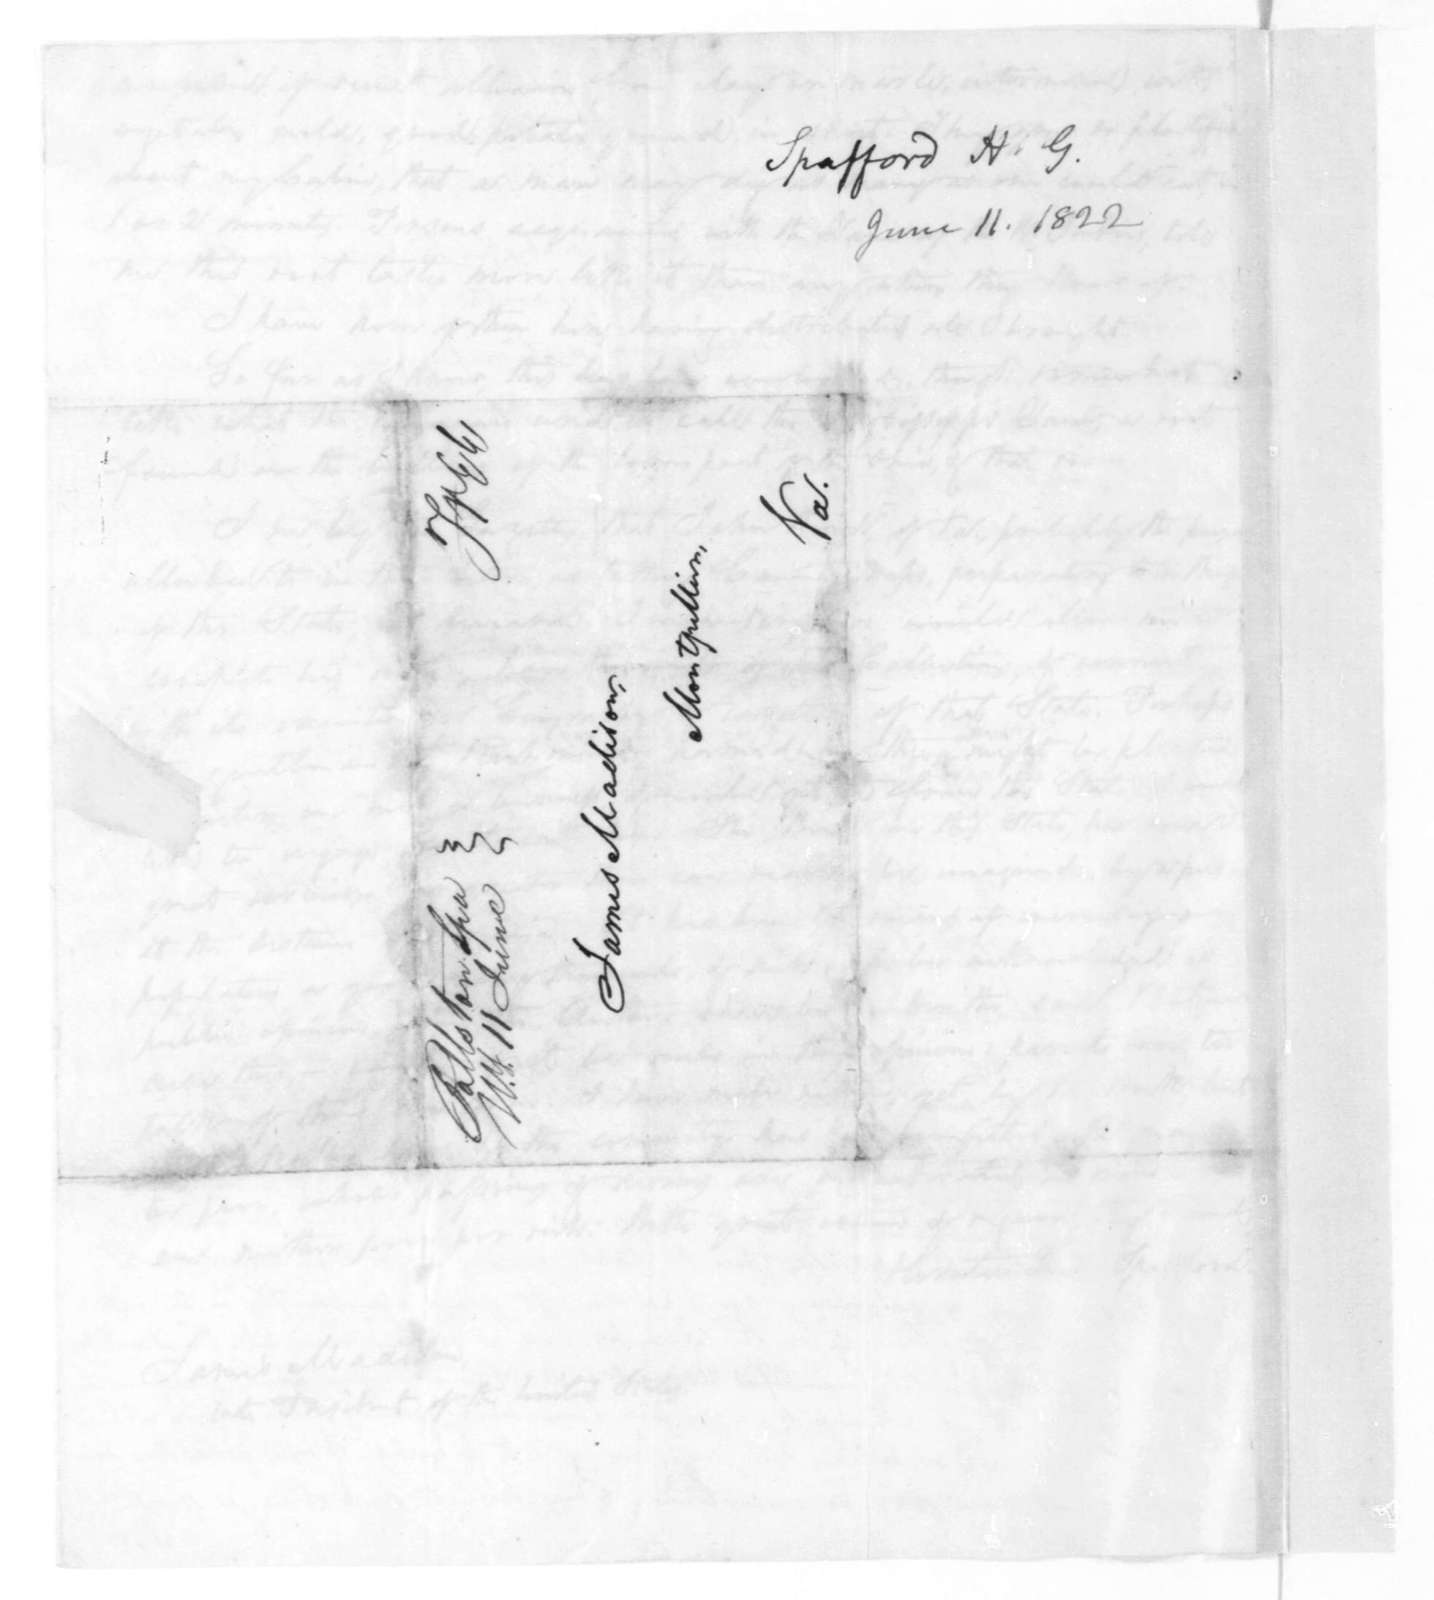 Horatio Gates Spafford to James Madison, June 11, 1822.